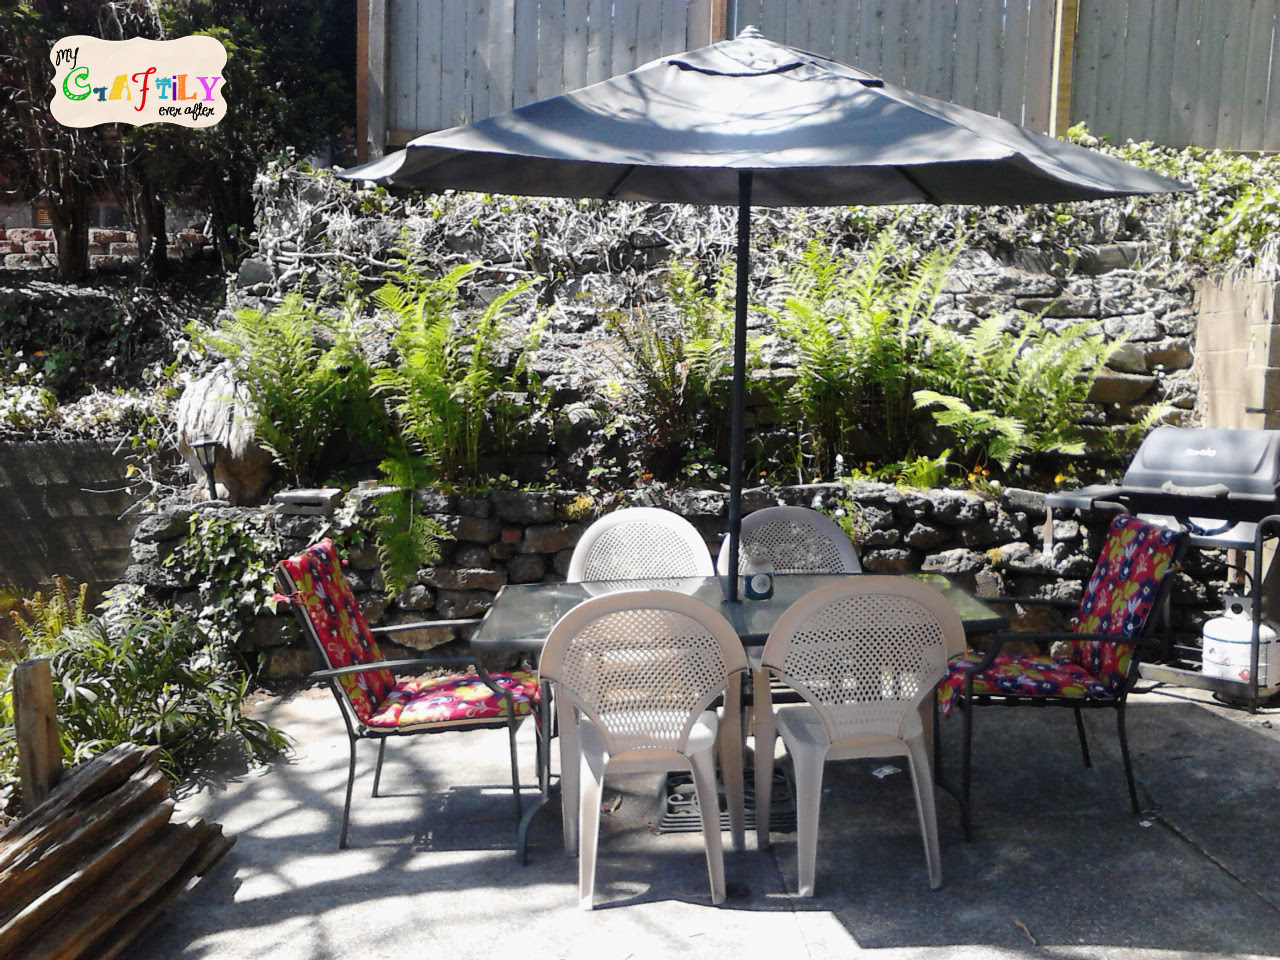 Upgrading the Patio Furniture - My Craftily Ever After